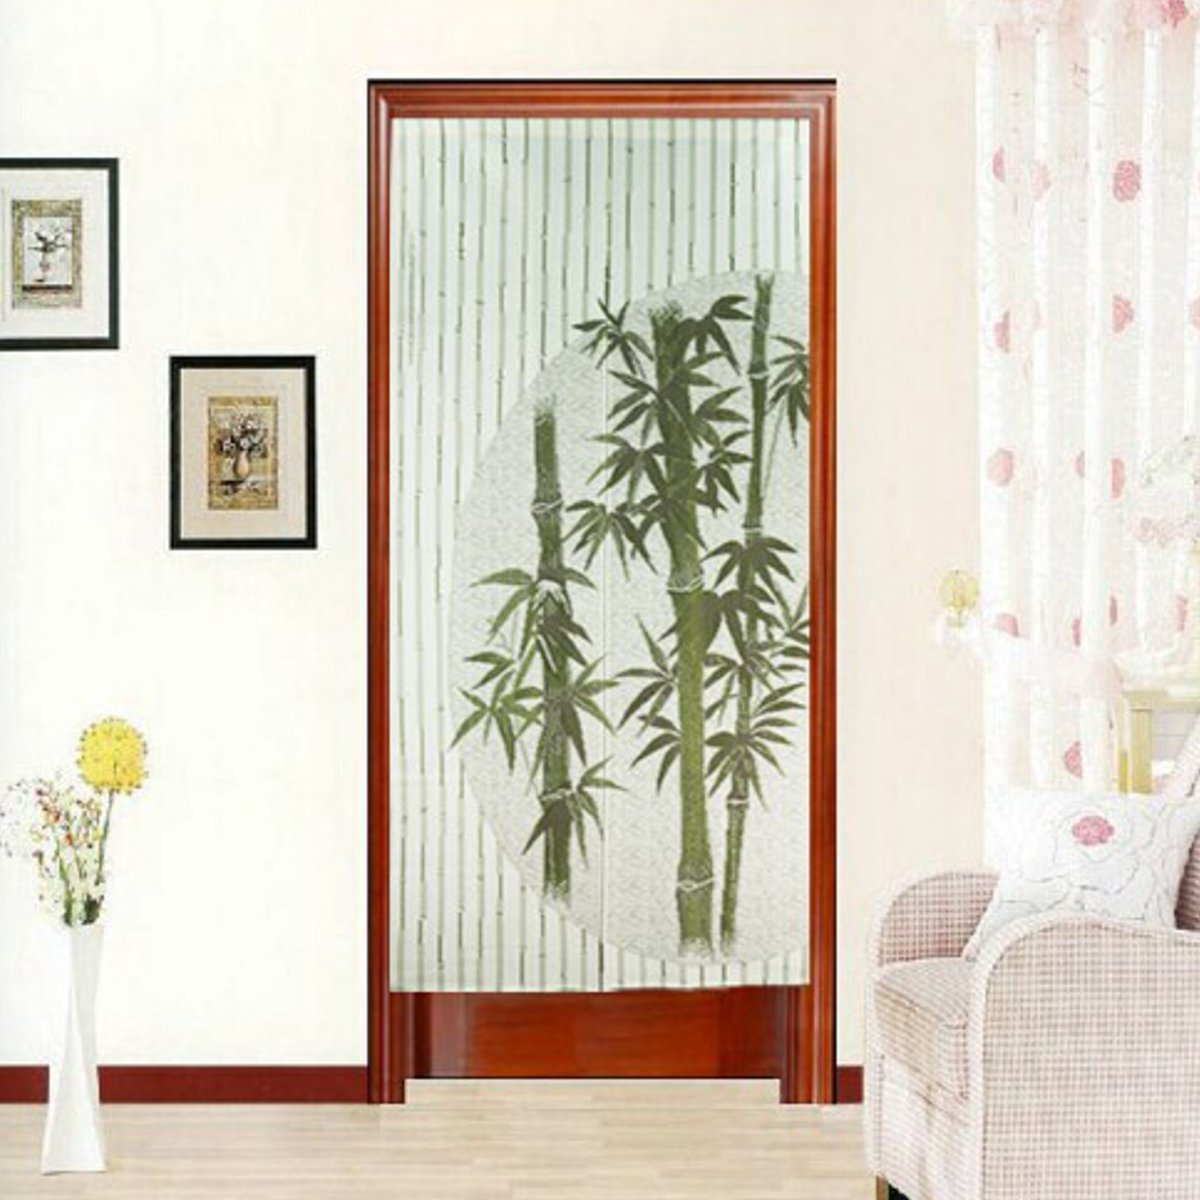 Marvelous Green Bamboo Printed Door Curtain Tapestry Room Divider Doorway Room Door  Curtain Cover Home Decorative Textiles 170X85cm